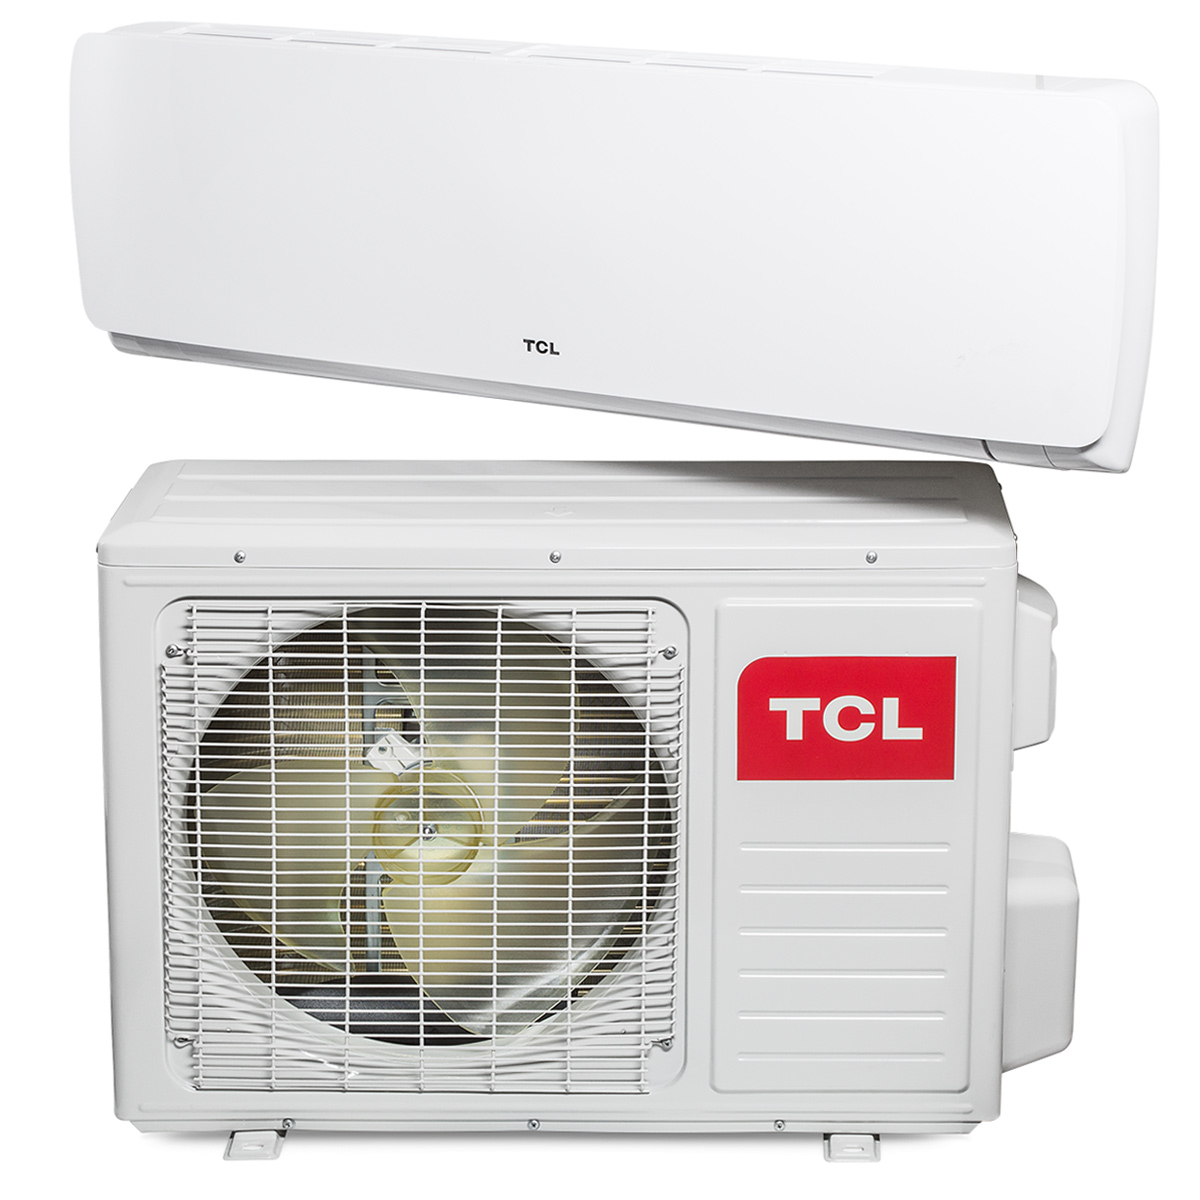 tcl split klimaanlage modell dn mit wlan und full 5d inverter 9000 btu. Black Bedroom Furniture Sets. Home Design Ideas